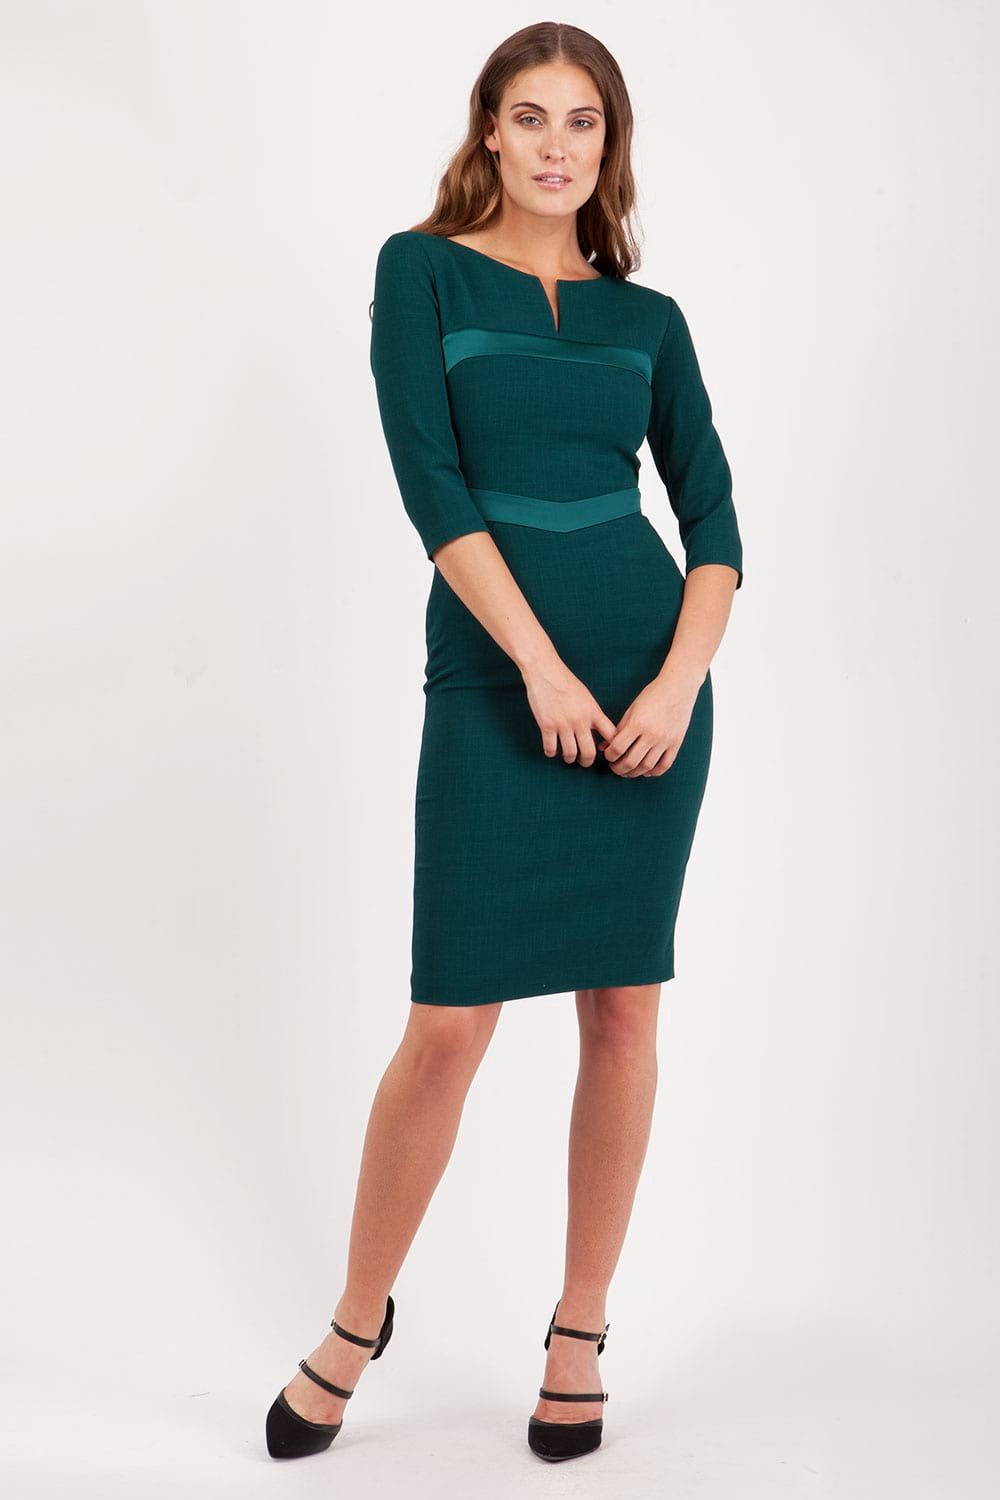 7ce3fcdaac3 Hybrid Yvonne 3 4 Sleeve Pencil Dress - Hybrid Fashion